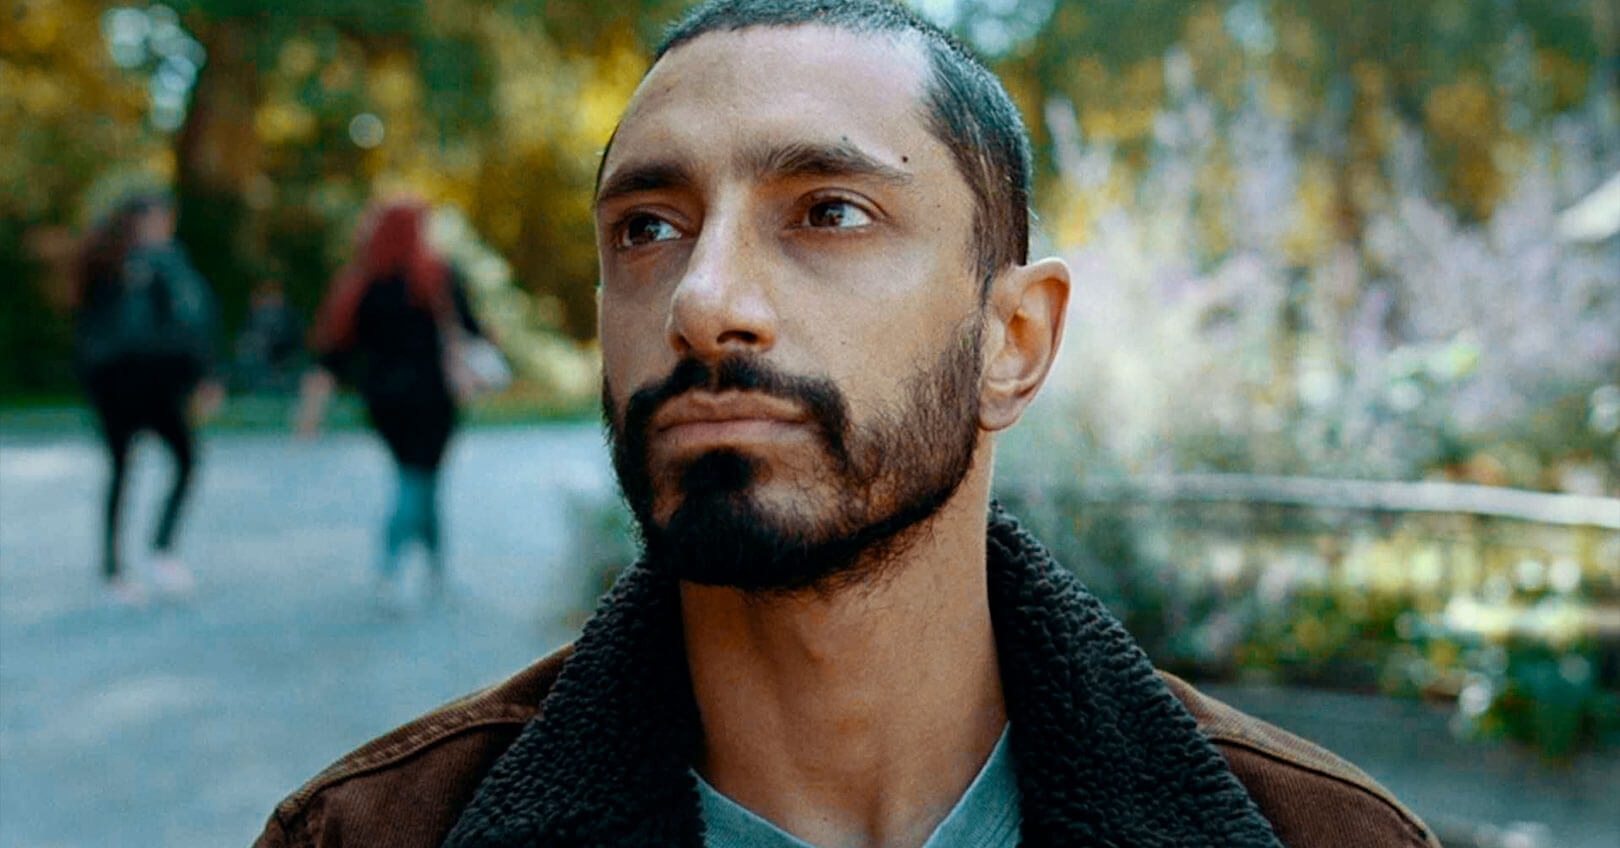 Riz Ahmed in a screen from Sound of Metal. He is sitting on a bench in Paris.